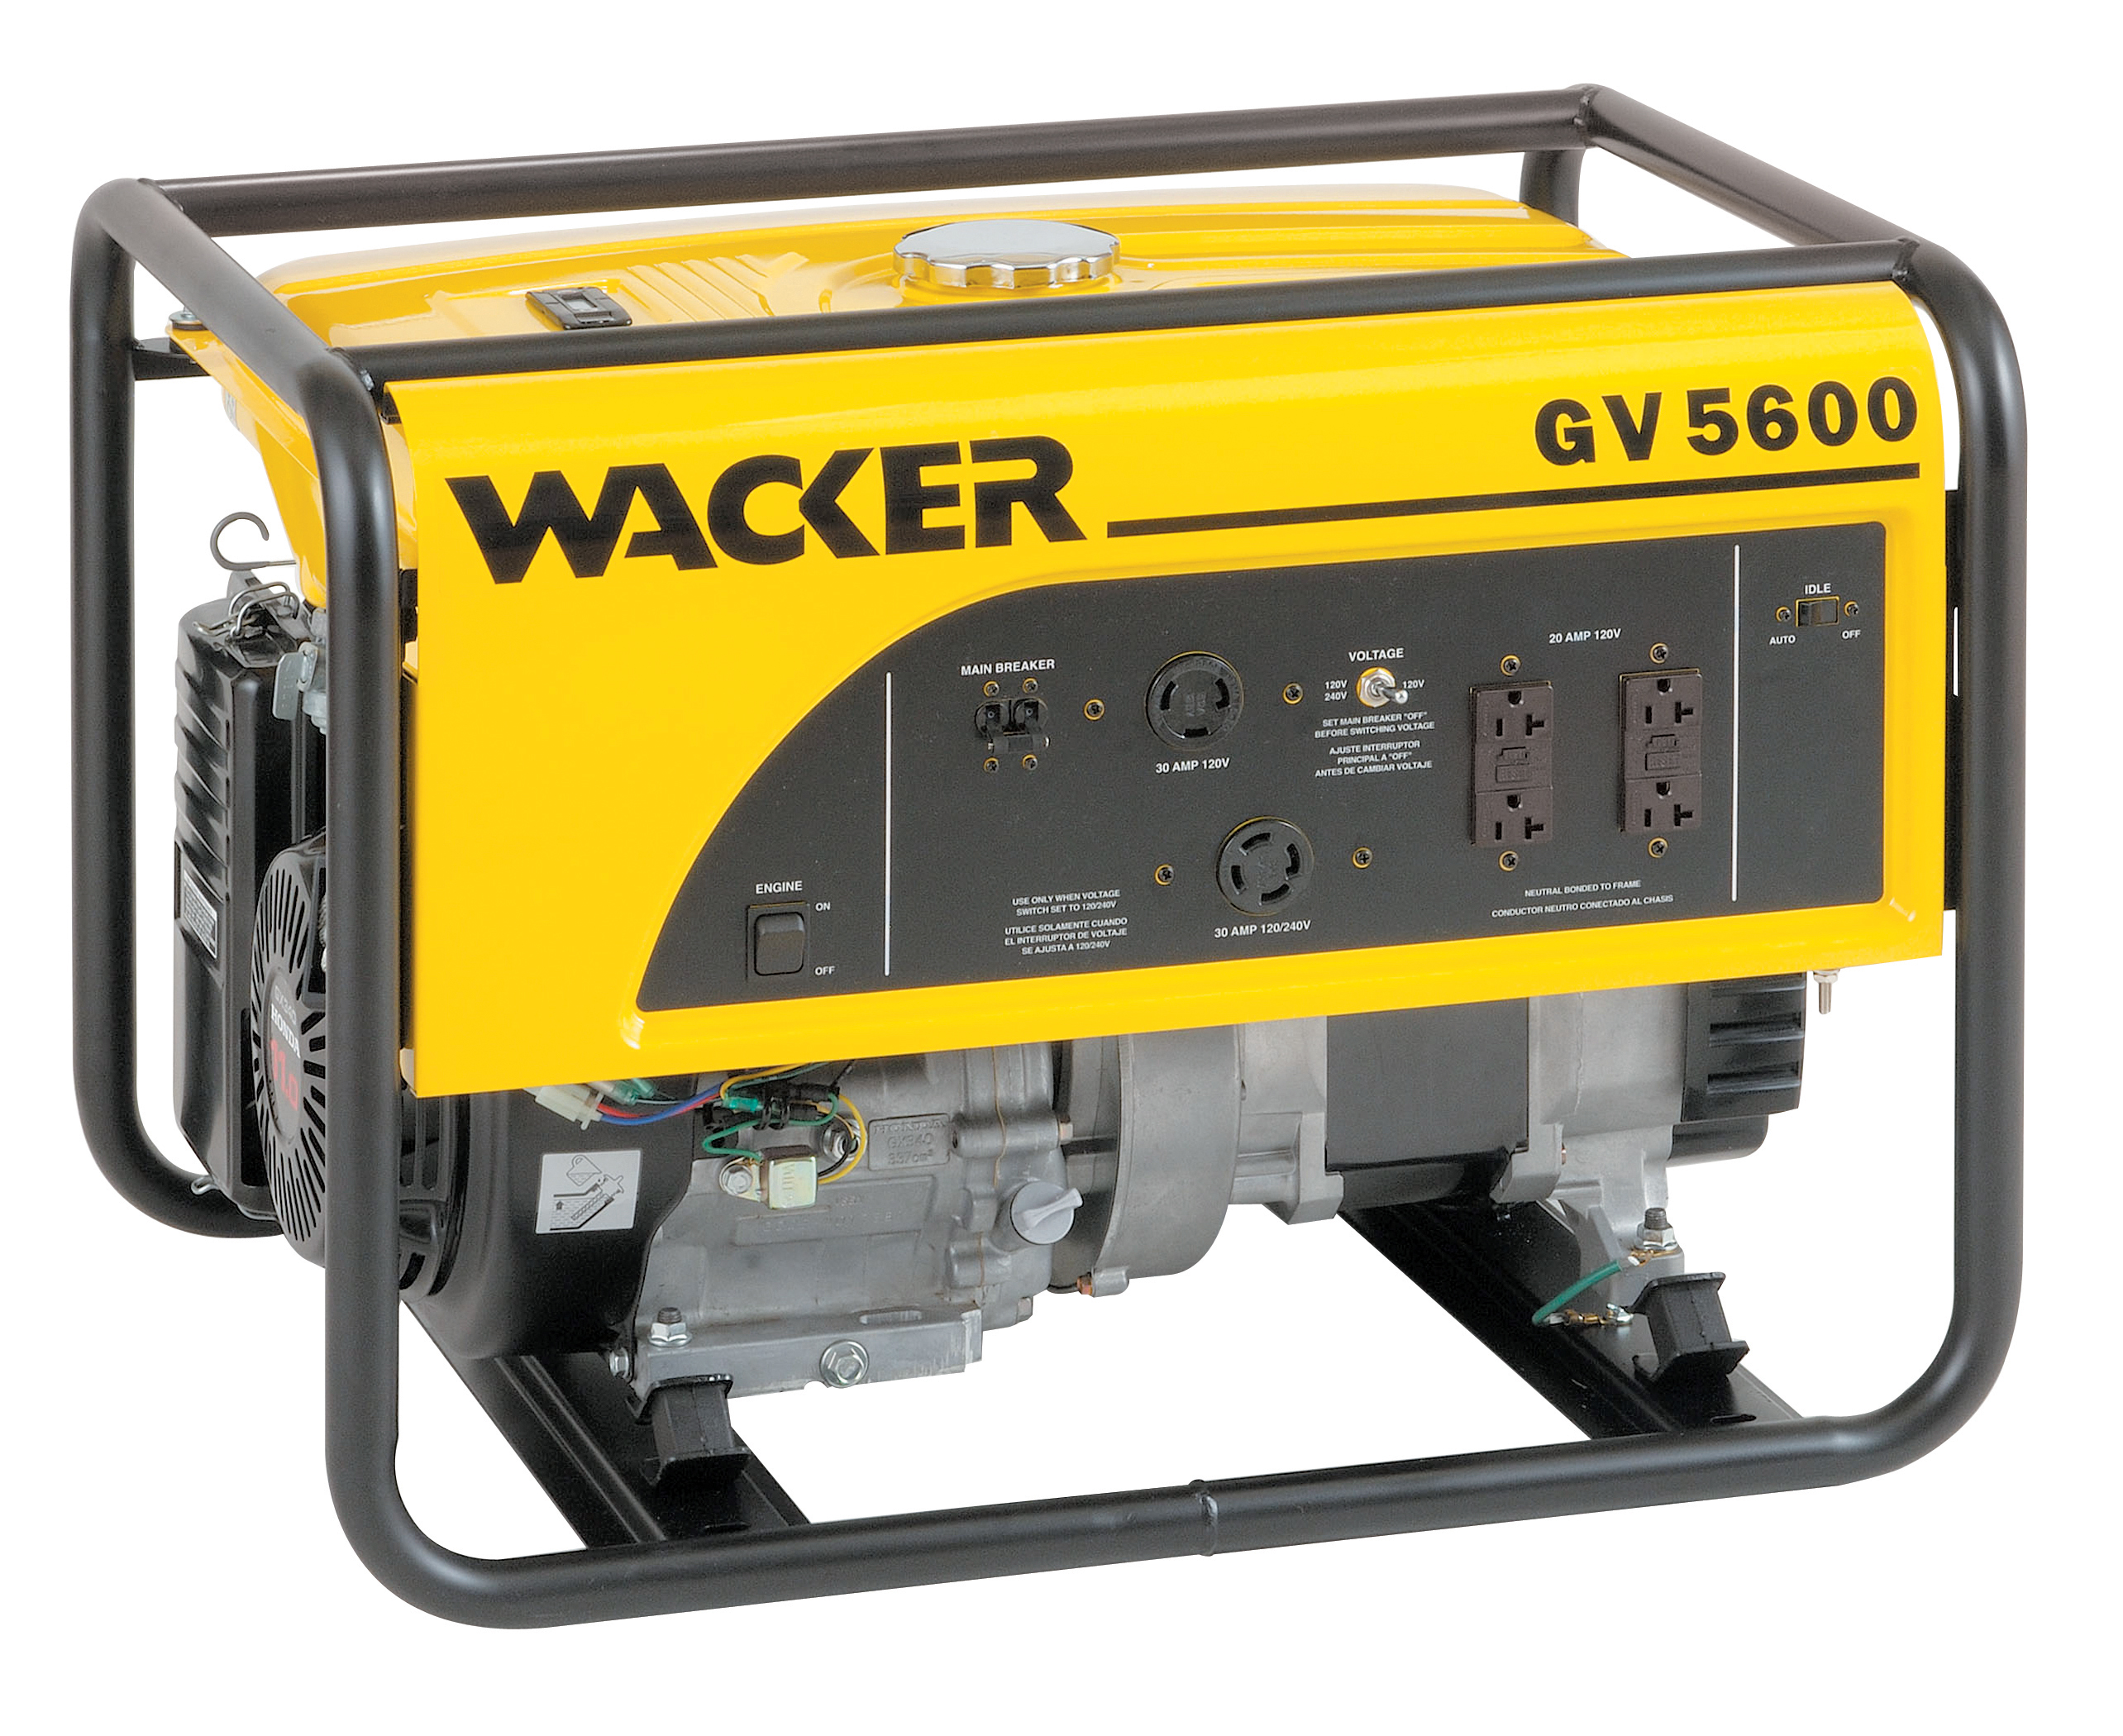 Honda Generator Maintenance Manual Wiring Diagram Master Blogs Ev4010 For Wacker 5600 Start W Engine Em6500sx Service